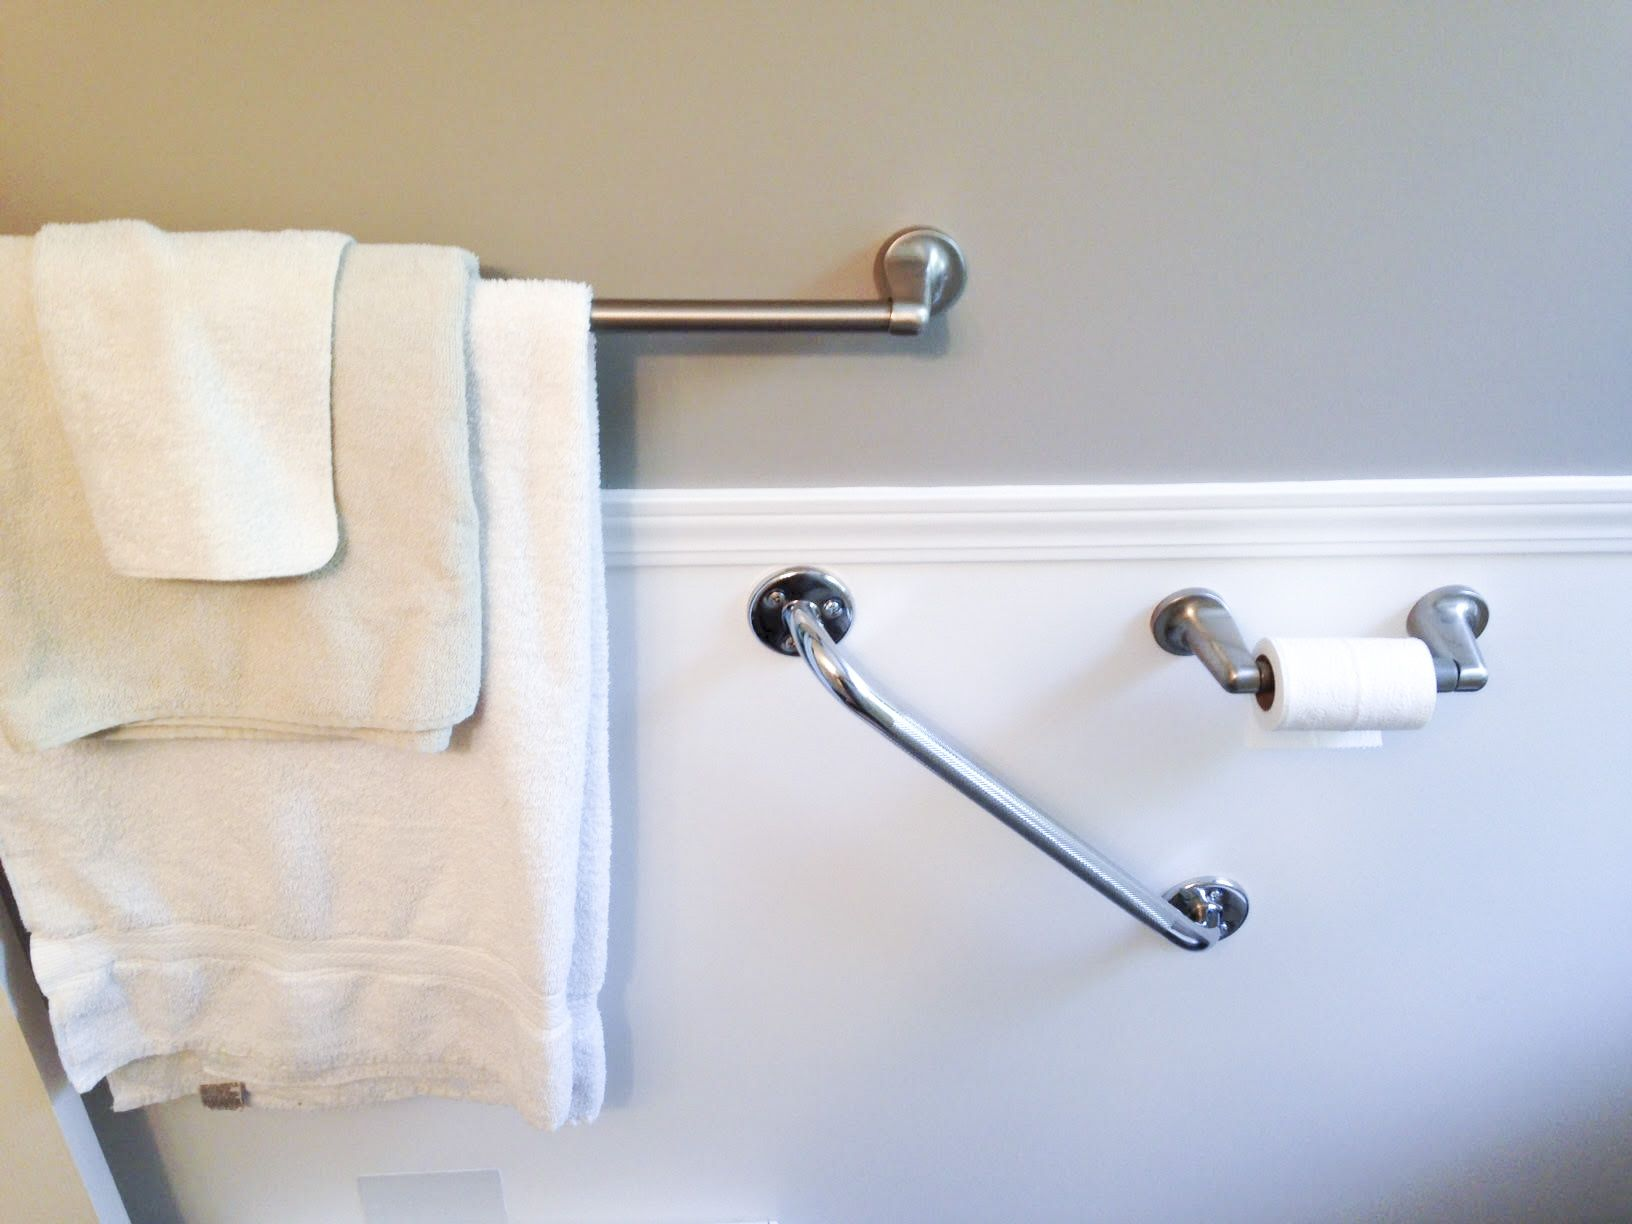 Bathroom grab bars placement | bathroom design 2017-2018 | Pinterest ...